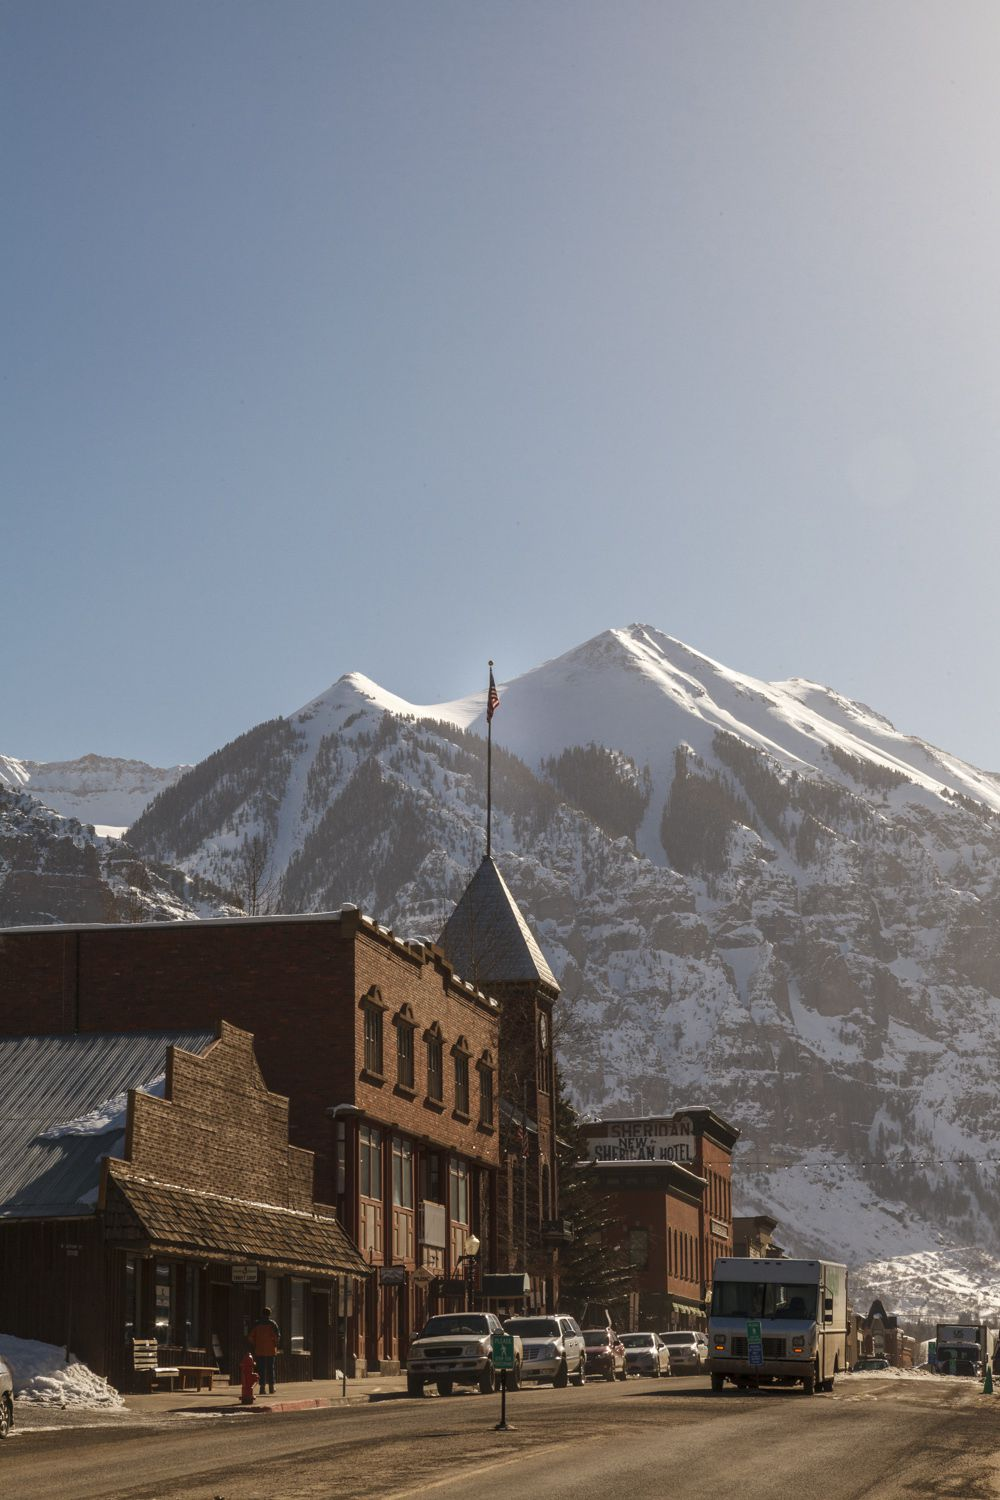 Looking up at mountains from the town of Telluride with buildings in the foreground.